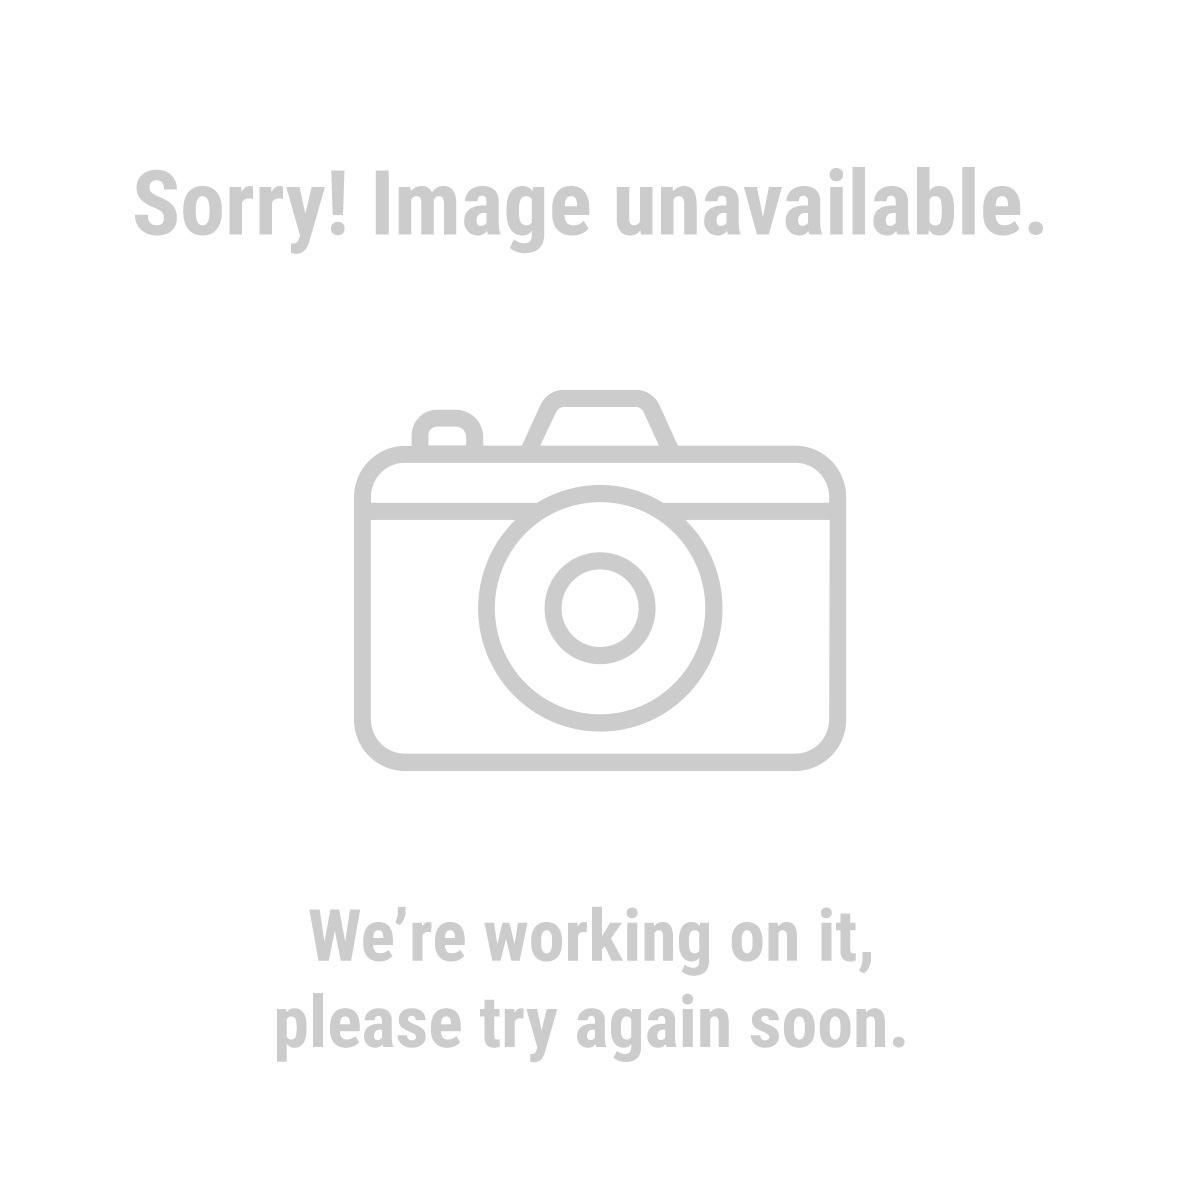 100 Watt Solar Panel Kit Solar Panels Mobile Homes Html on mobile home bathrooms, mobile home kitchens, mobile home windows, mobile home siding panels, mobile home rain water collection, mobile home roof trusses, mobile home energy saving tips, mobile home painting panels, mobile home insulation panels, mobile home wood, mobile home construction, mobile home roofing panels,